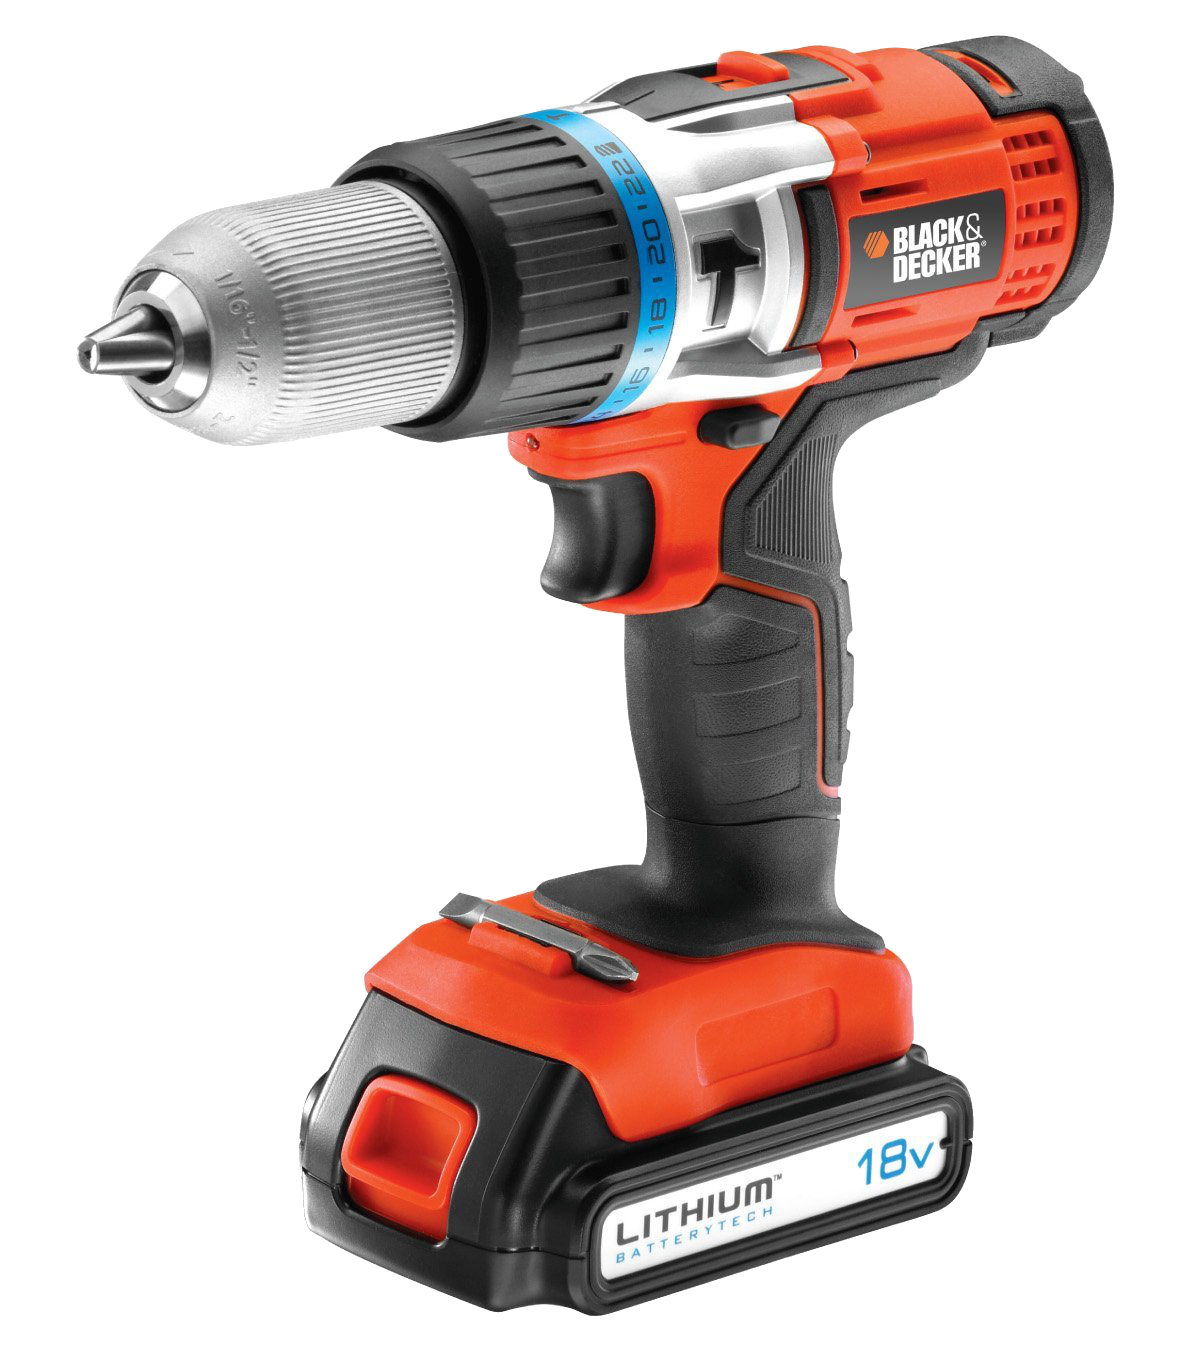 Perceuse visseuse black et decker - Perceuse black et decker 18v ...